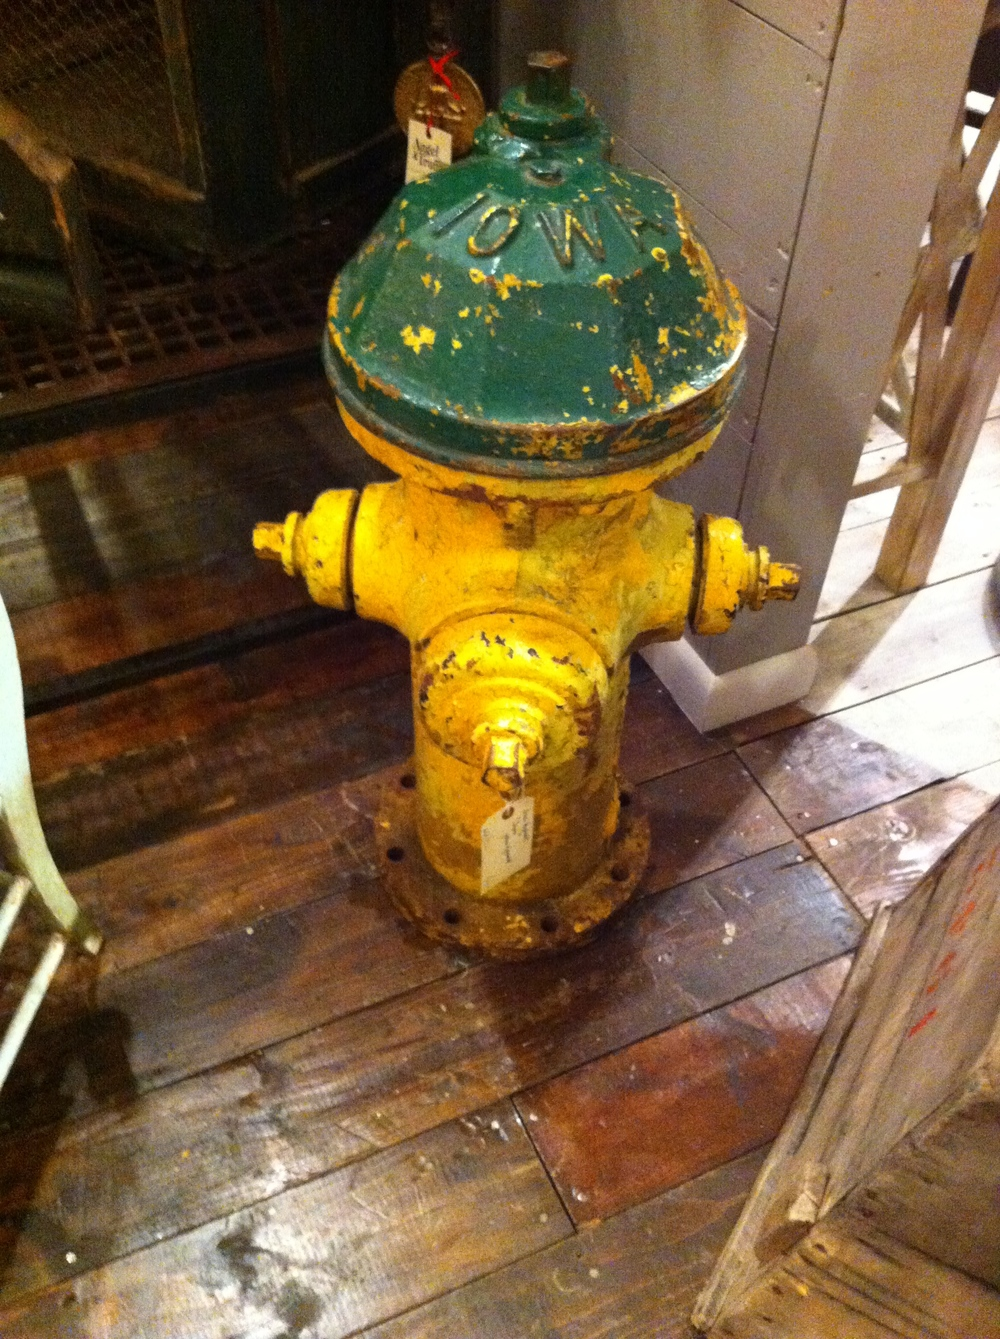 This fire hydrant was tempting but again too big and too heavy. Palladio is a huge furniture antique store with cafe/bistro on Central Ave., with a huge warehouse out back filled with architectural artifacts, fountains and fun objects like this one.